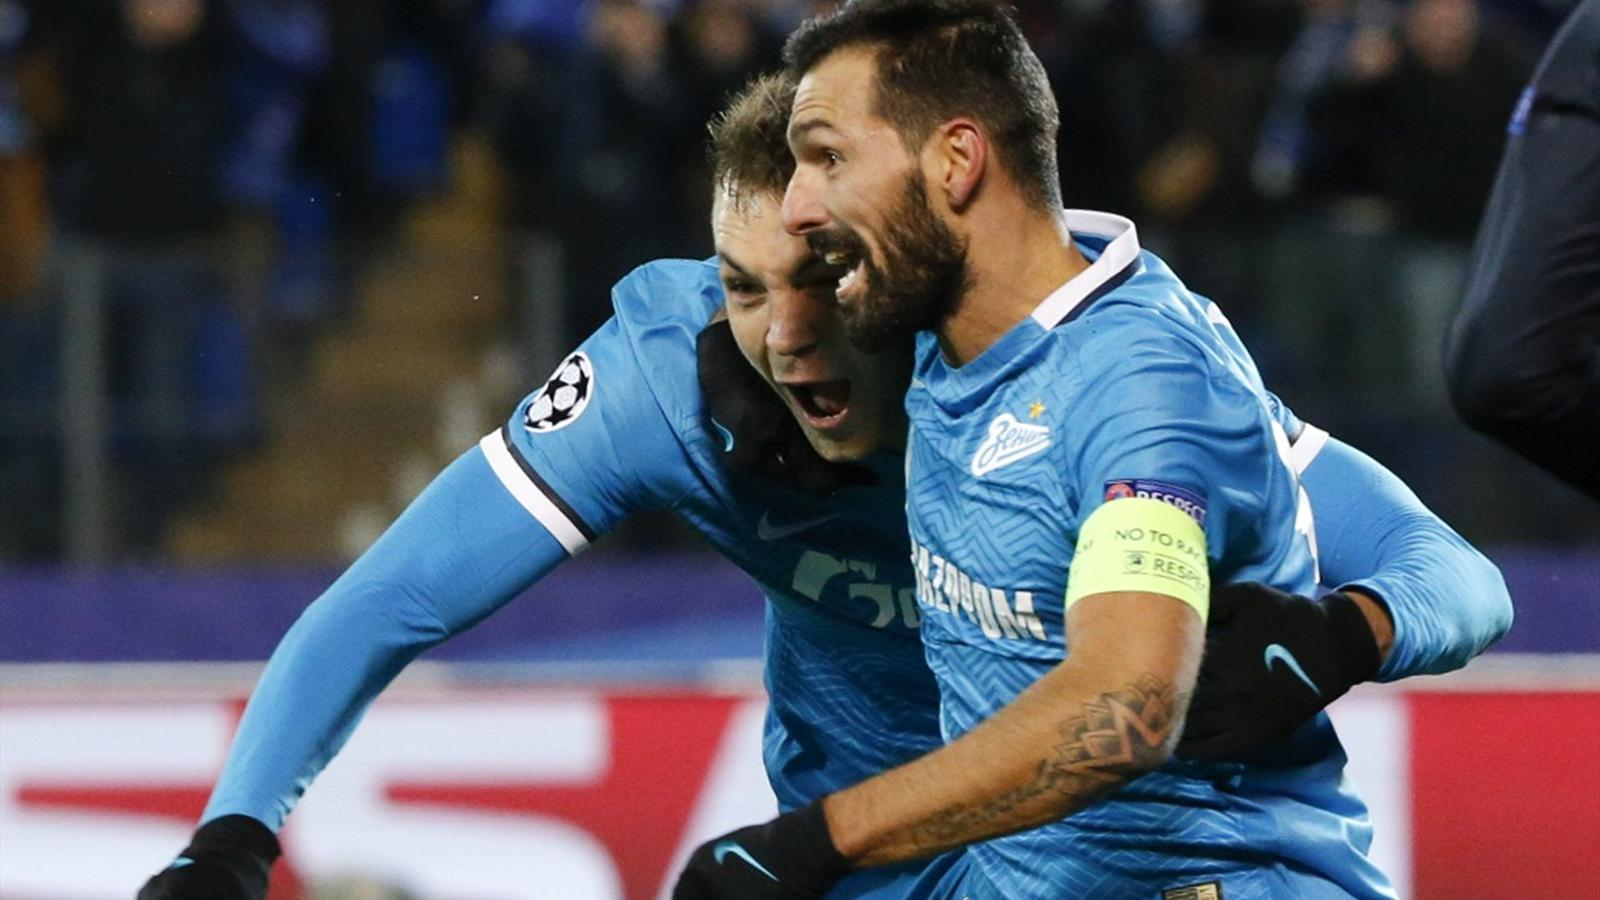 Zenit St. Peterburg's Artem Dzyuba celebrates with his team mate Danny after scoring the second goal